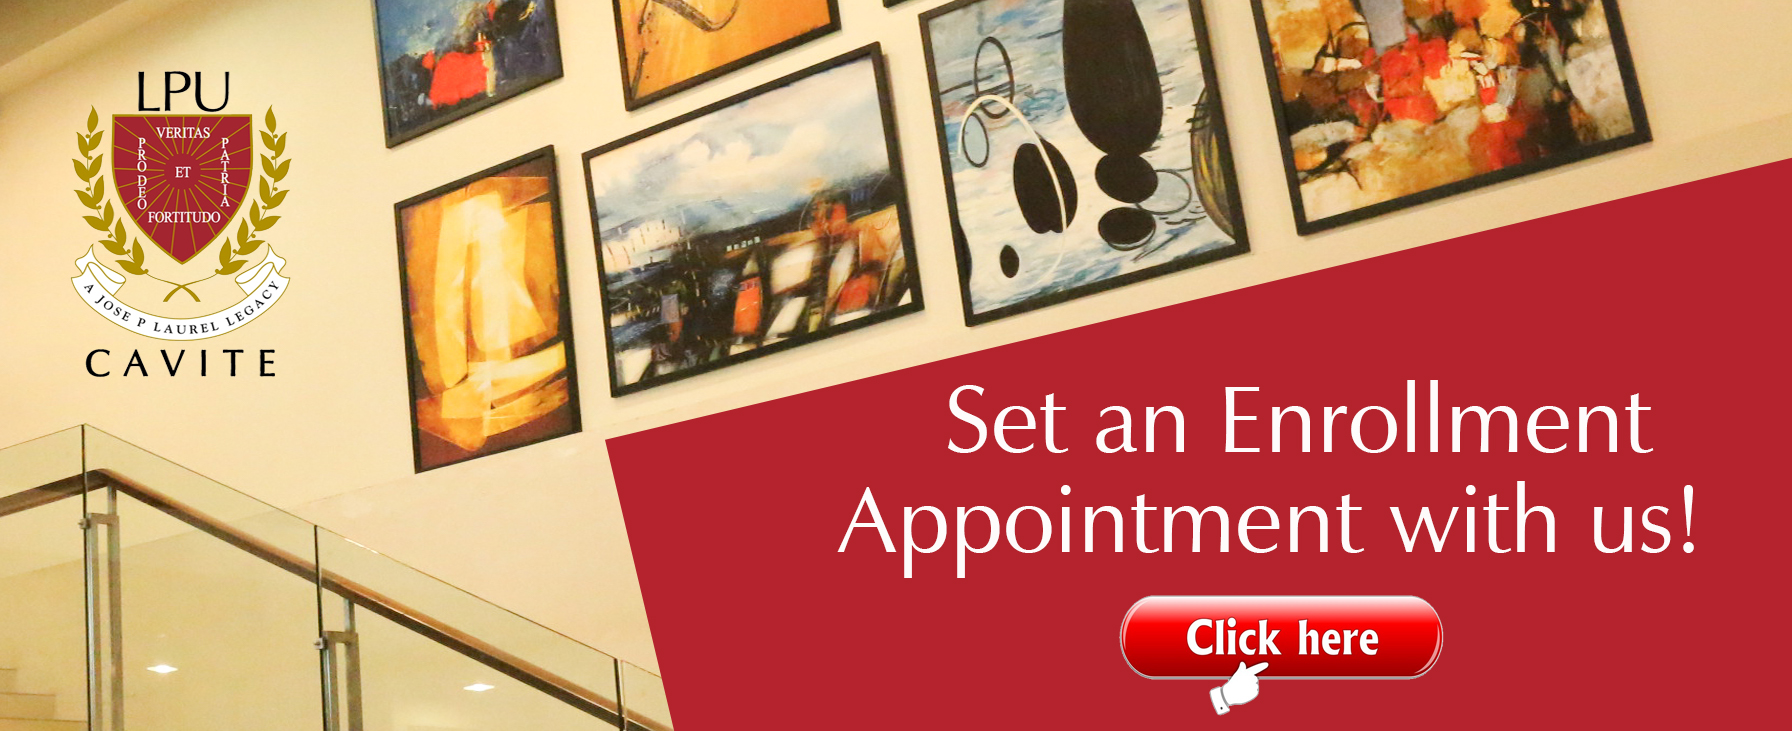 Set an Enrollment Appointment with Us